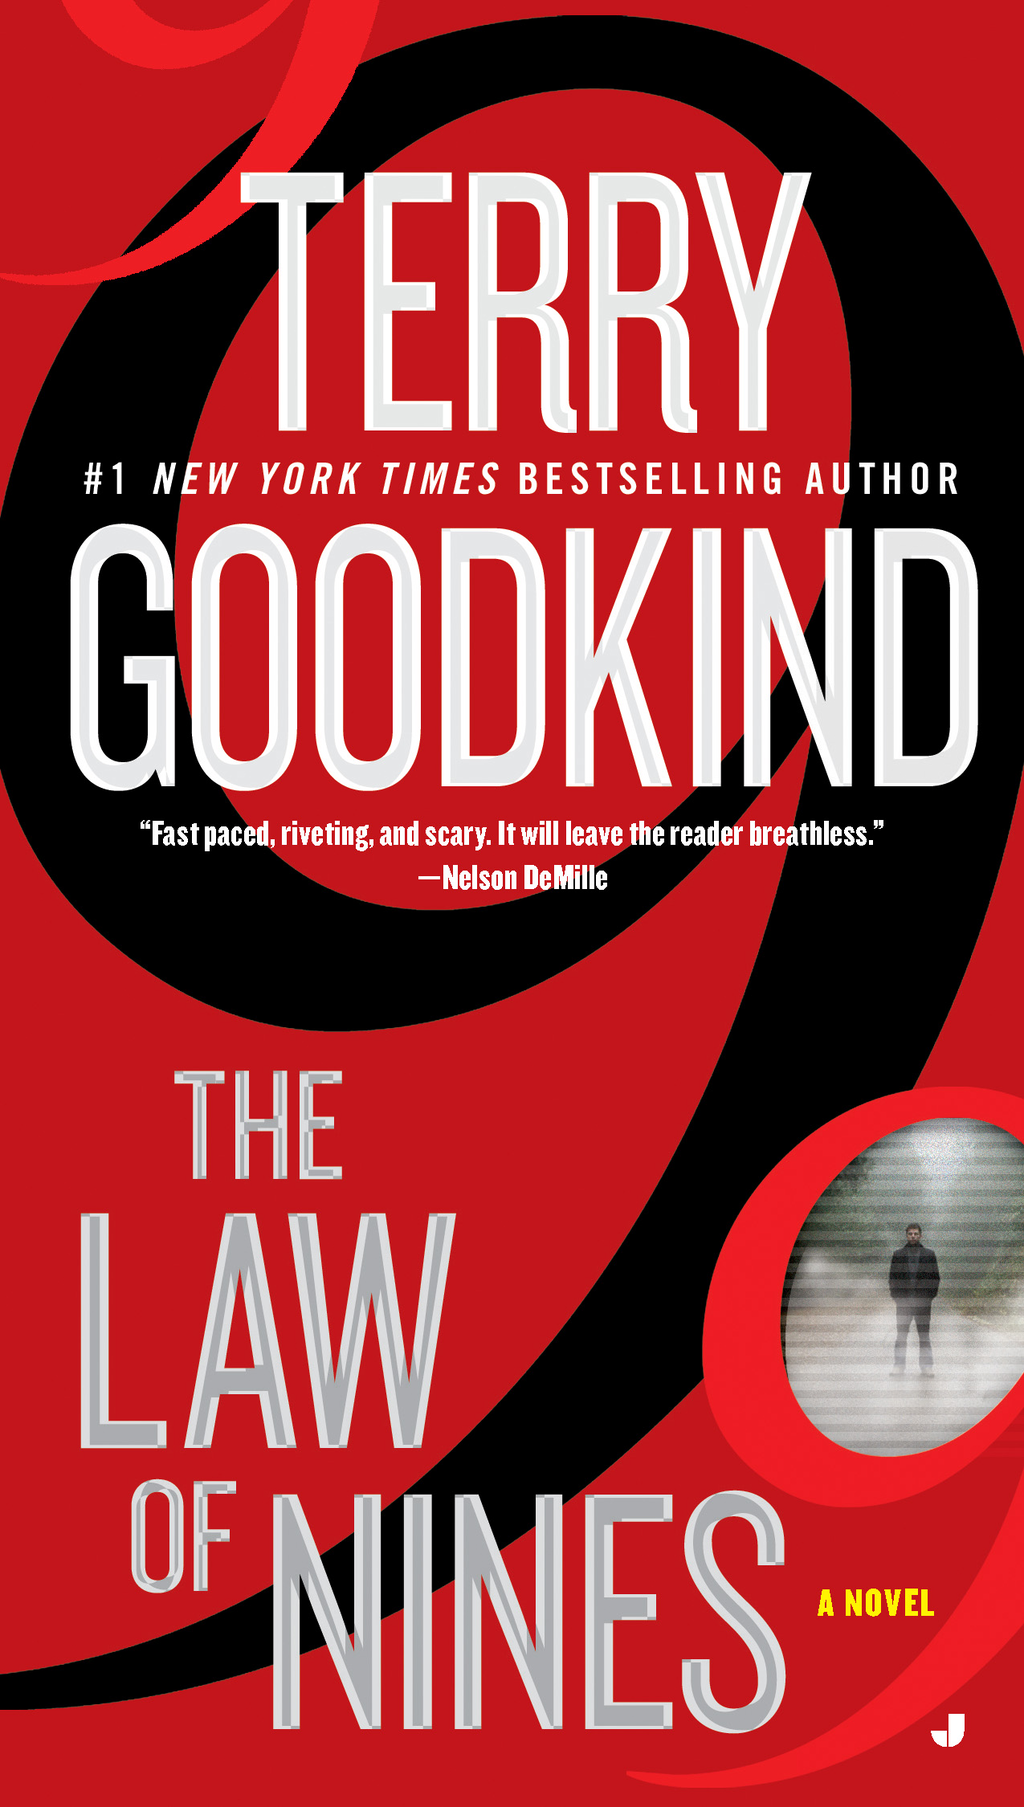 The Law of Nines By: Terry Goodkind